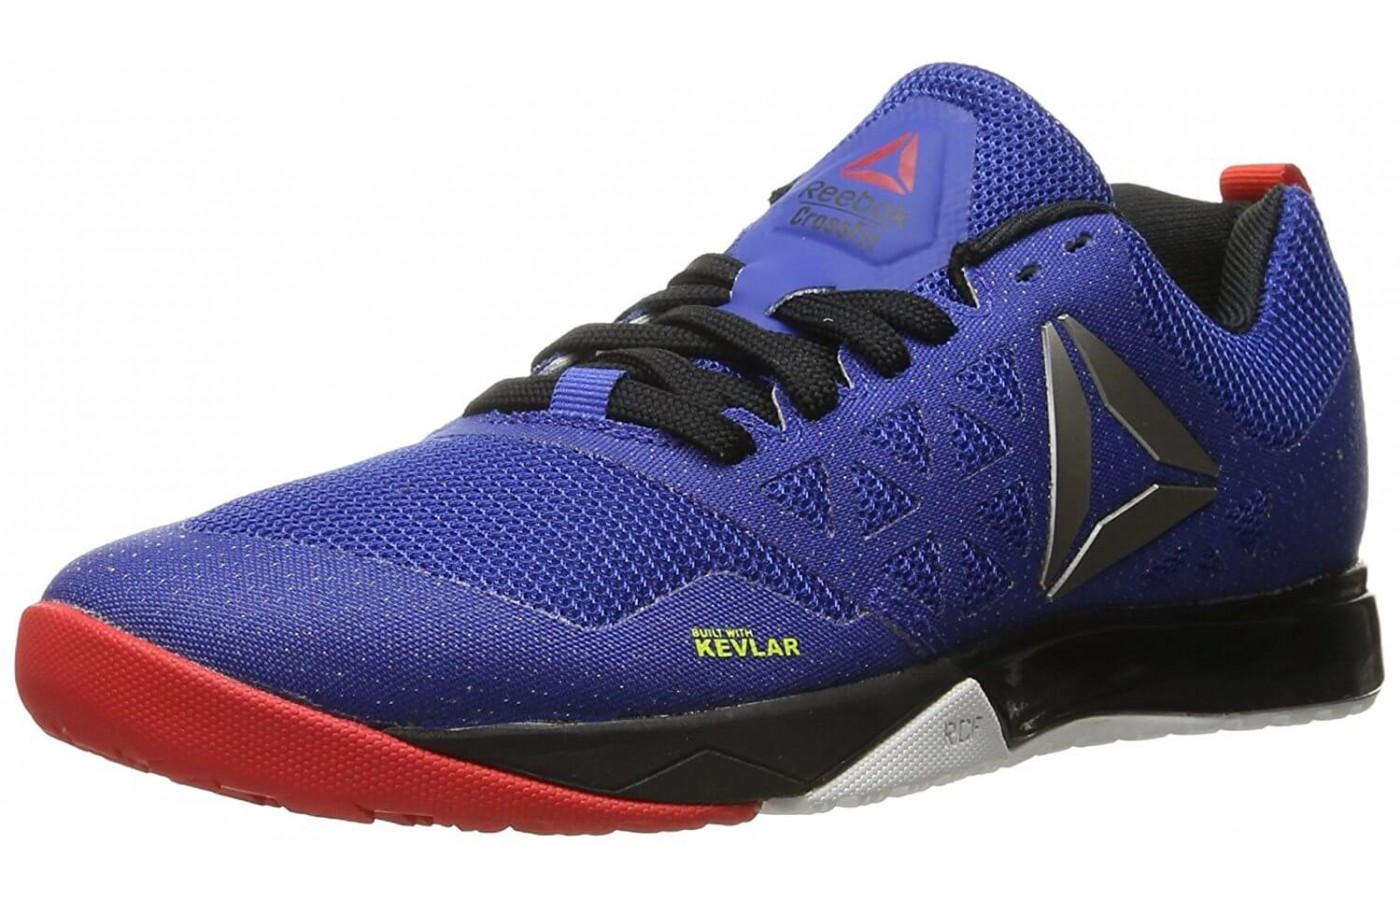 2f3b197c306 Reebok CrossFit Nano 6.0 - To Buy or Not in May 2019